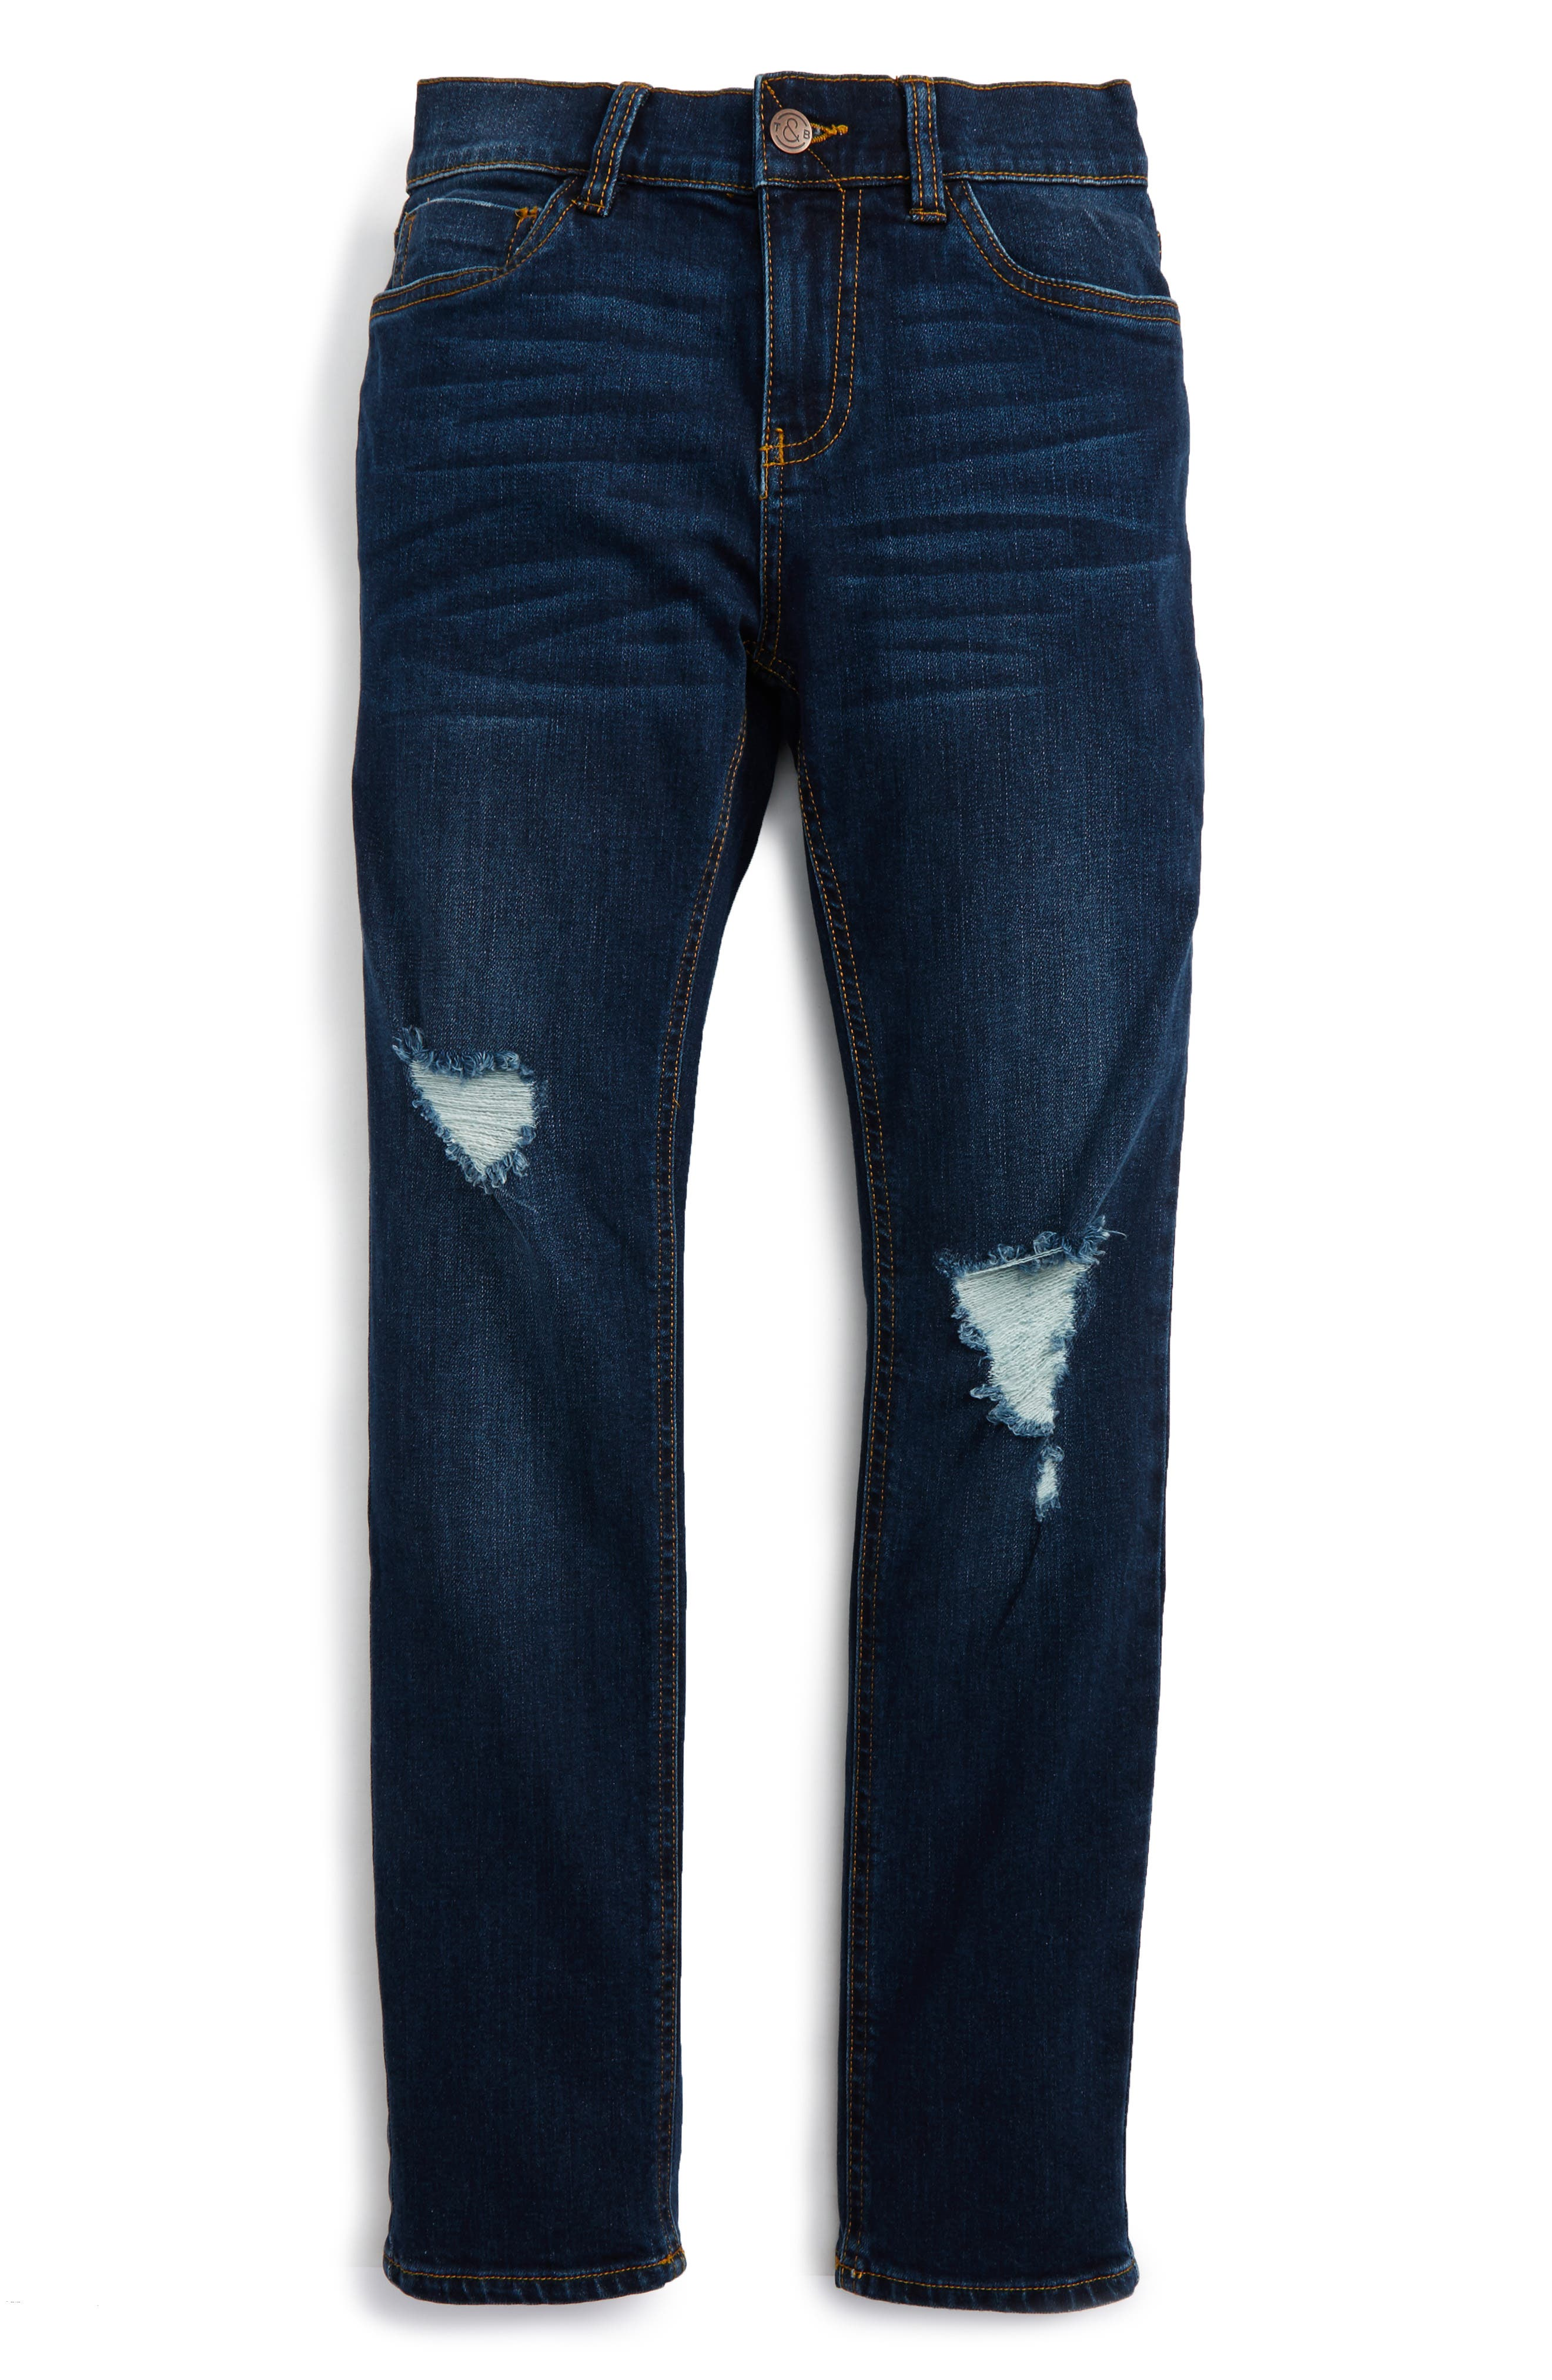 Treasure & Bond Distressed Skinny Jeans (Big Boys)